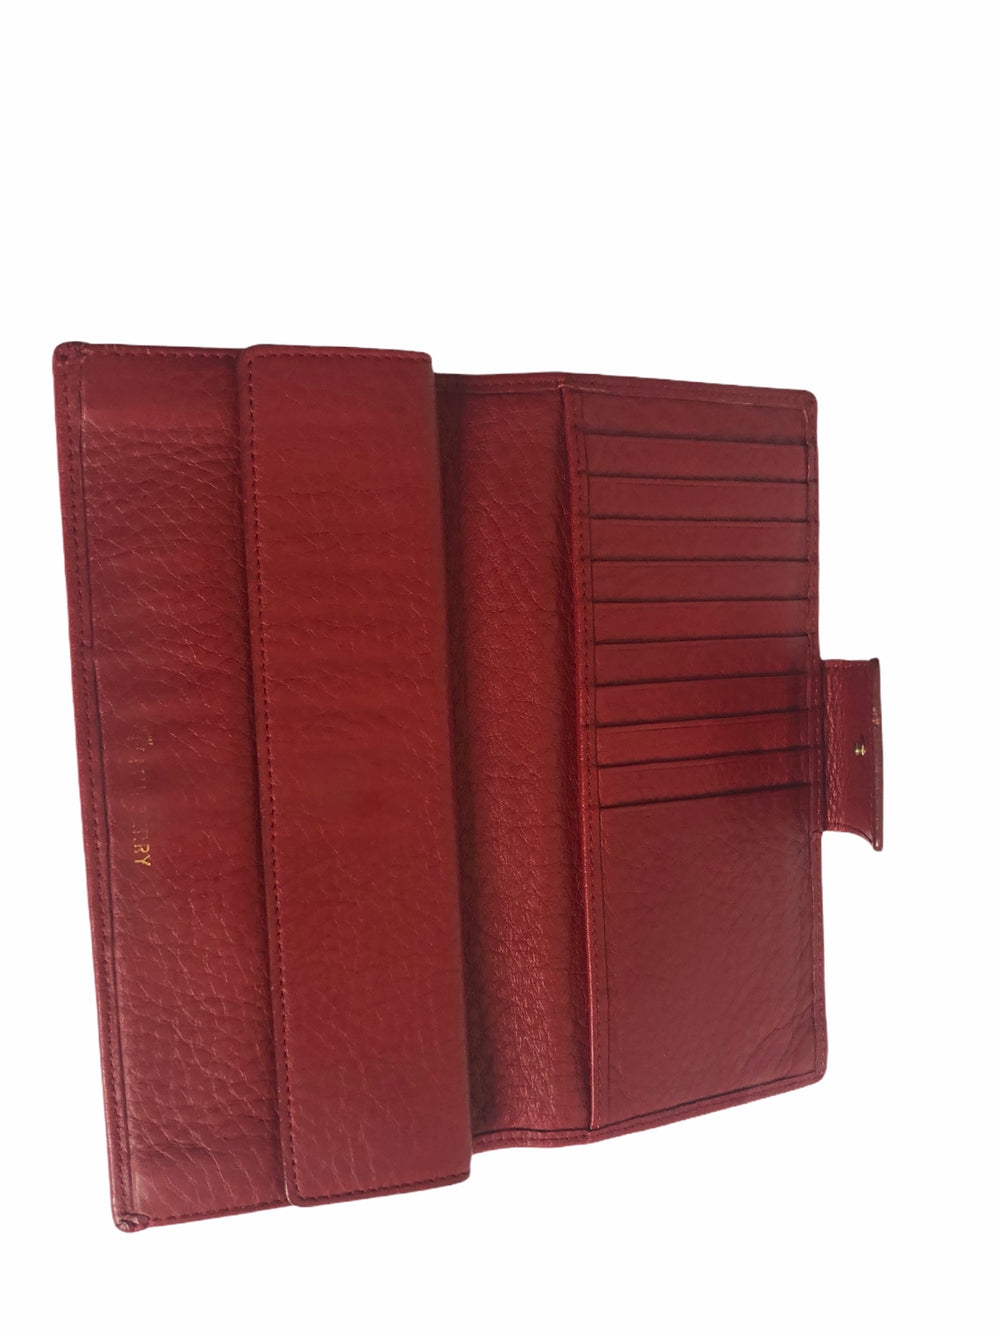 Mulberry Red Leather Bi-Fold Wallet - As Seen on Instagram 29/11/20